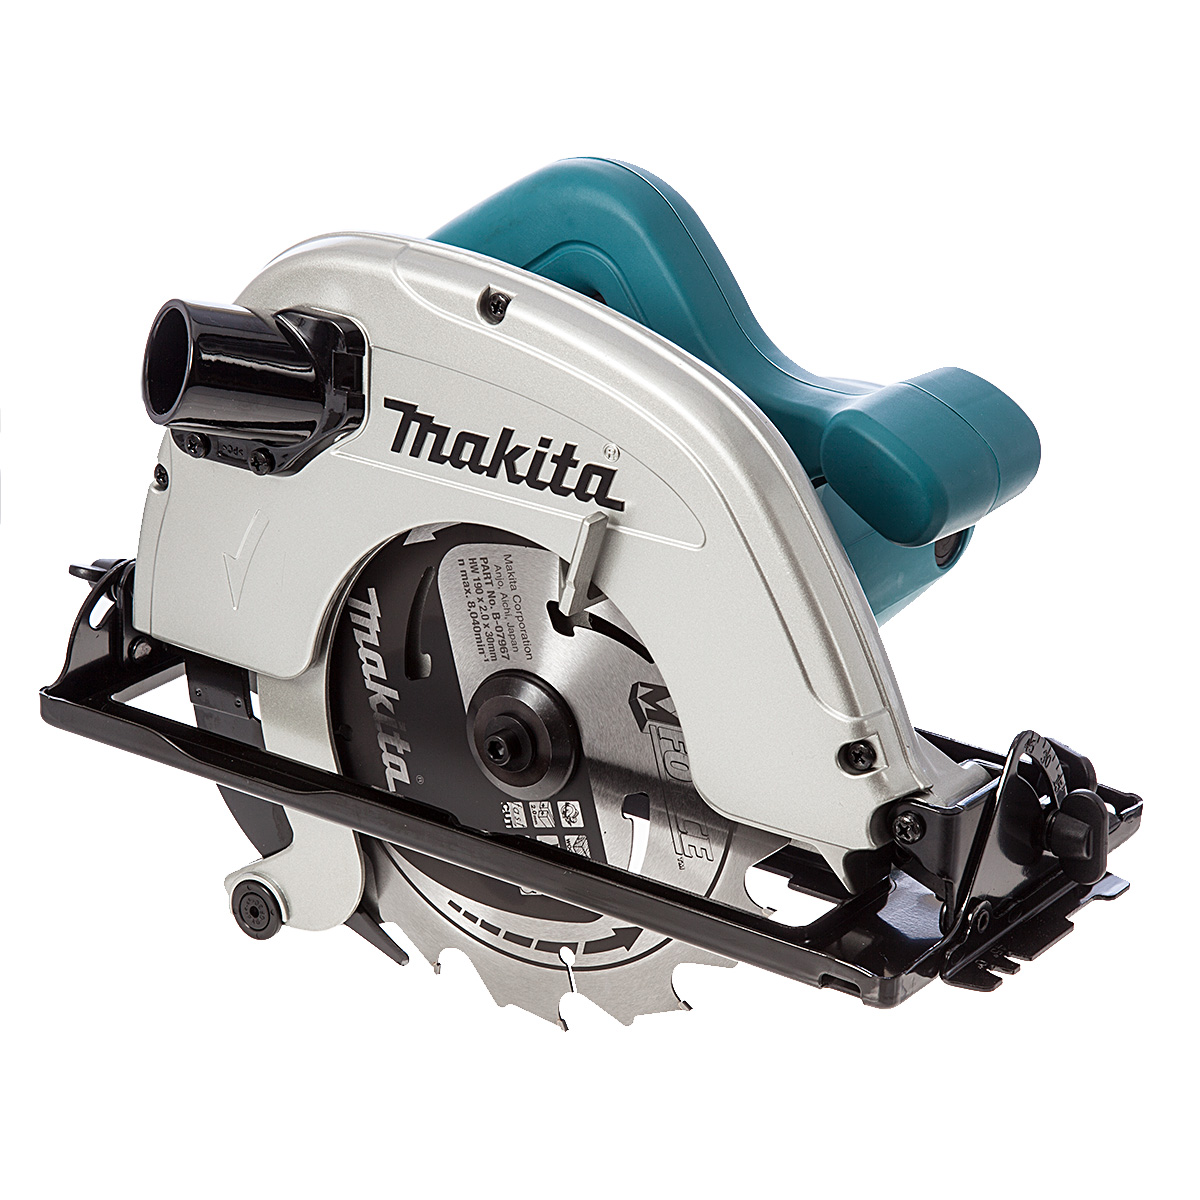 MAKITA 5704RK 190mm CIRCULAR SAW 110V